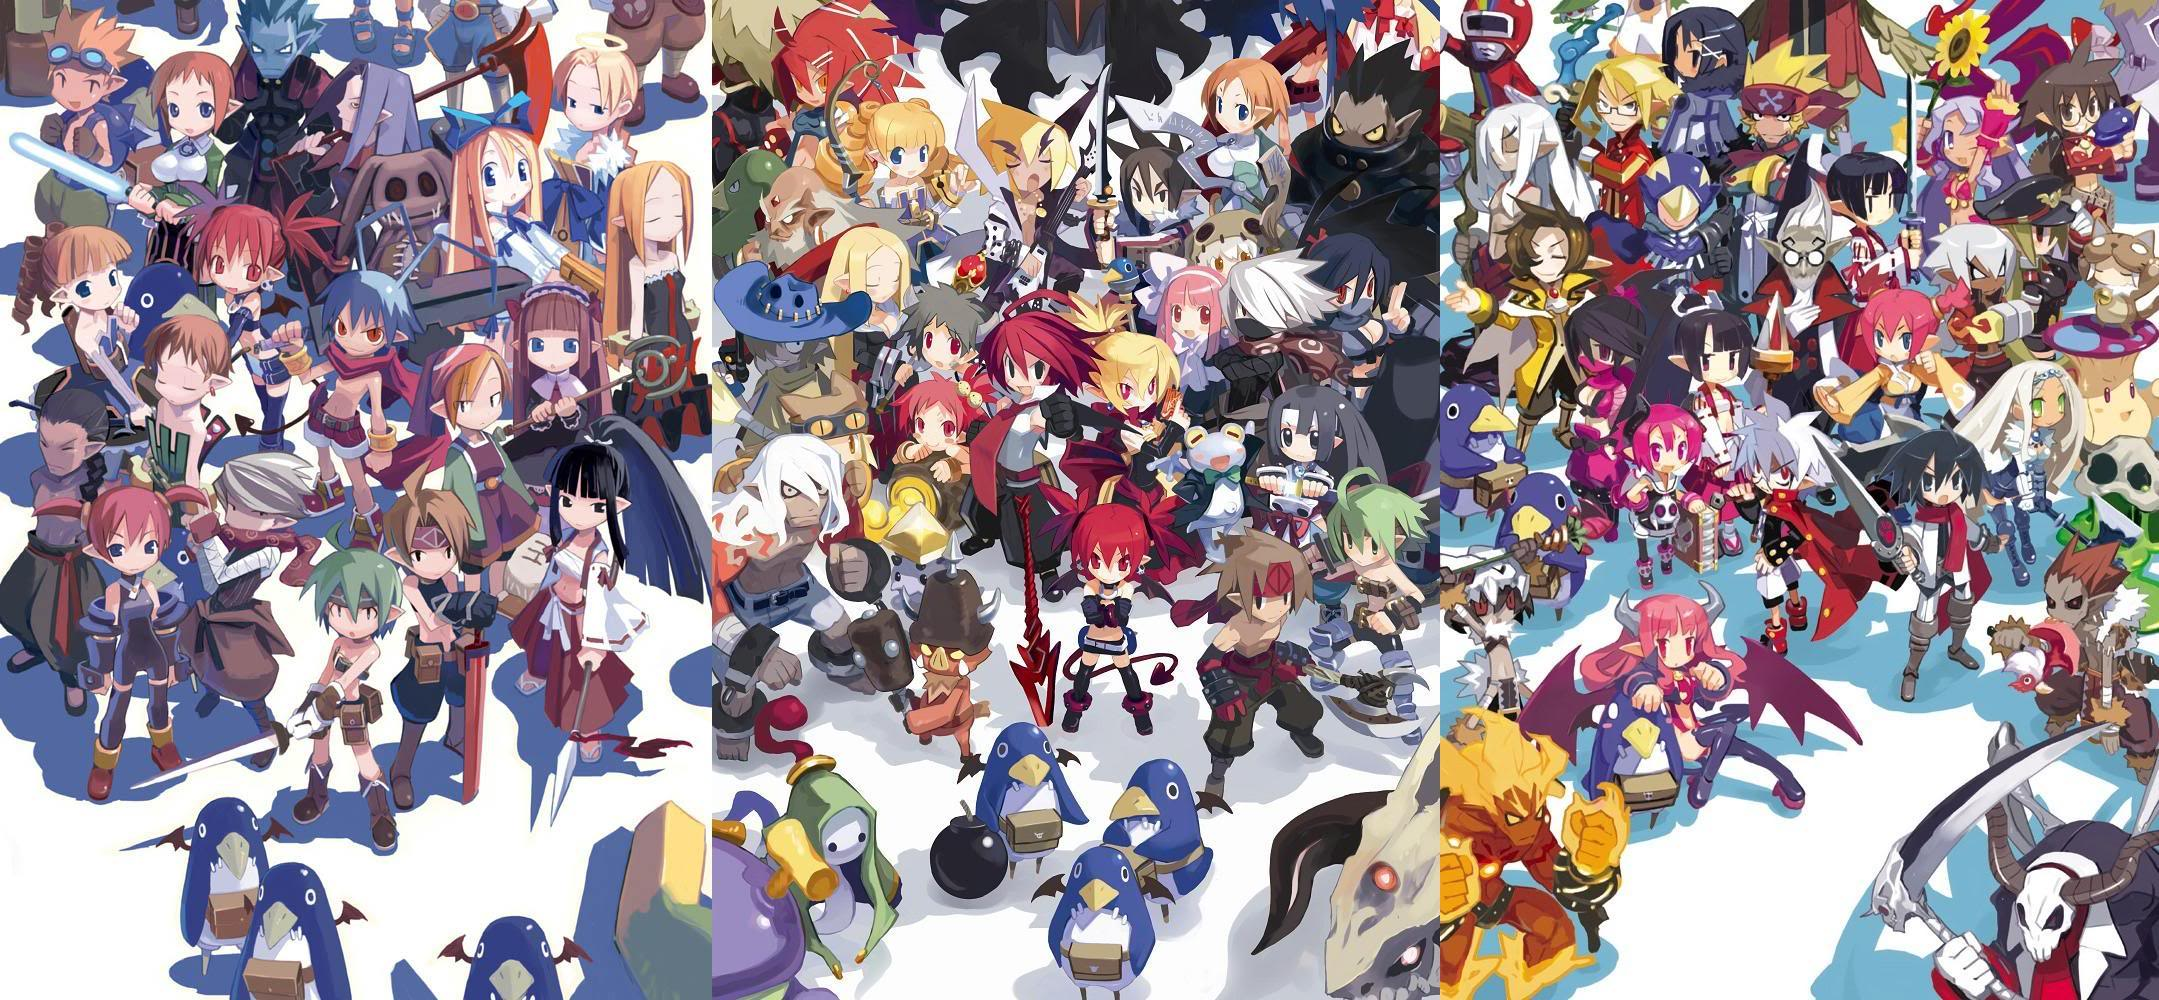 43 Disgaea HD Wallpapers | Backgrounds - Wallpaper Abyss